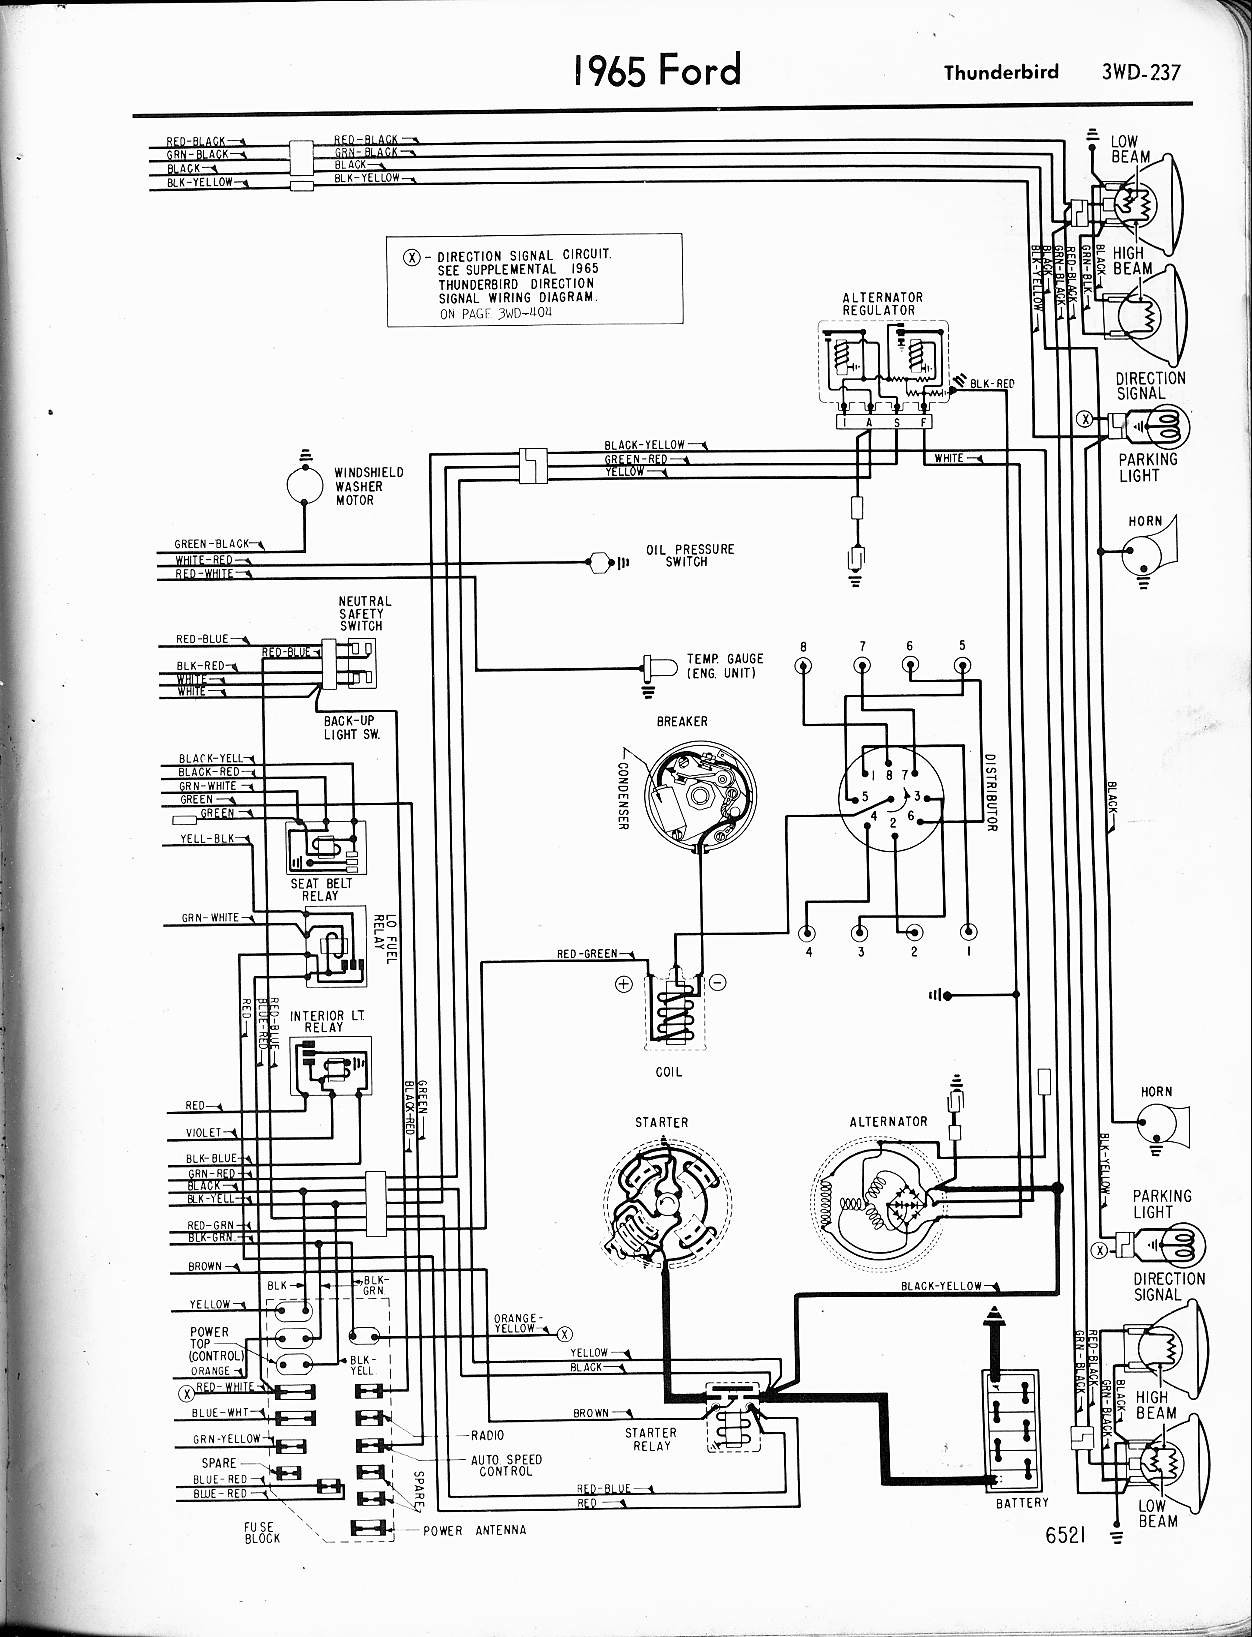 1992 thunderbird wiring diagram wiring rh westpol co 1986 Ford Thunderbird Wiring Diagram 1966 Ford Thunderbird Wiring Diagram